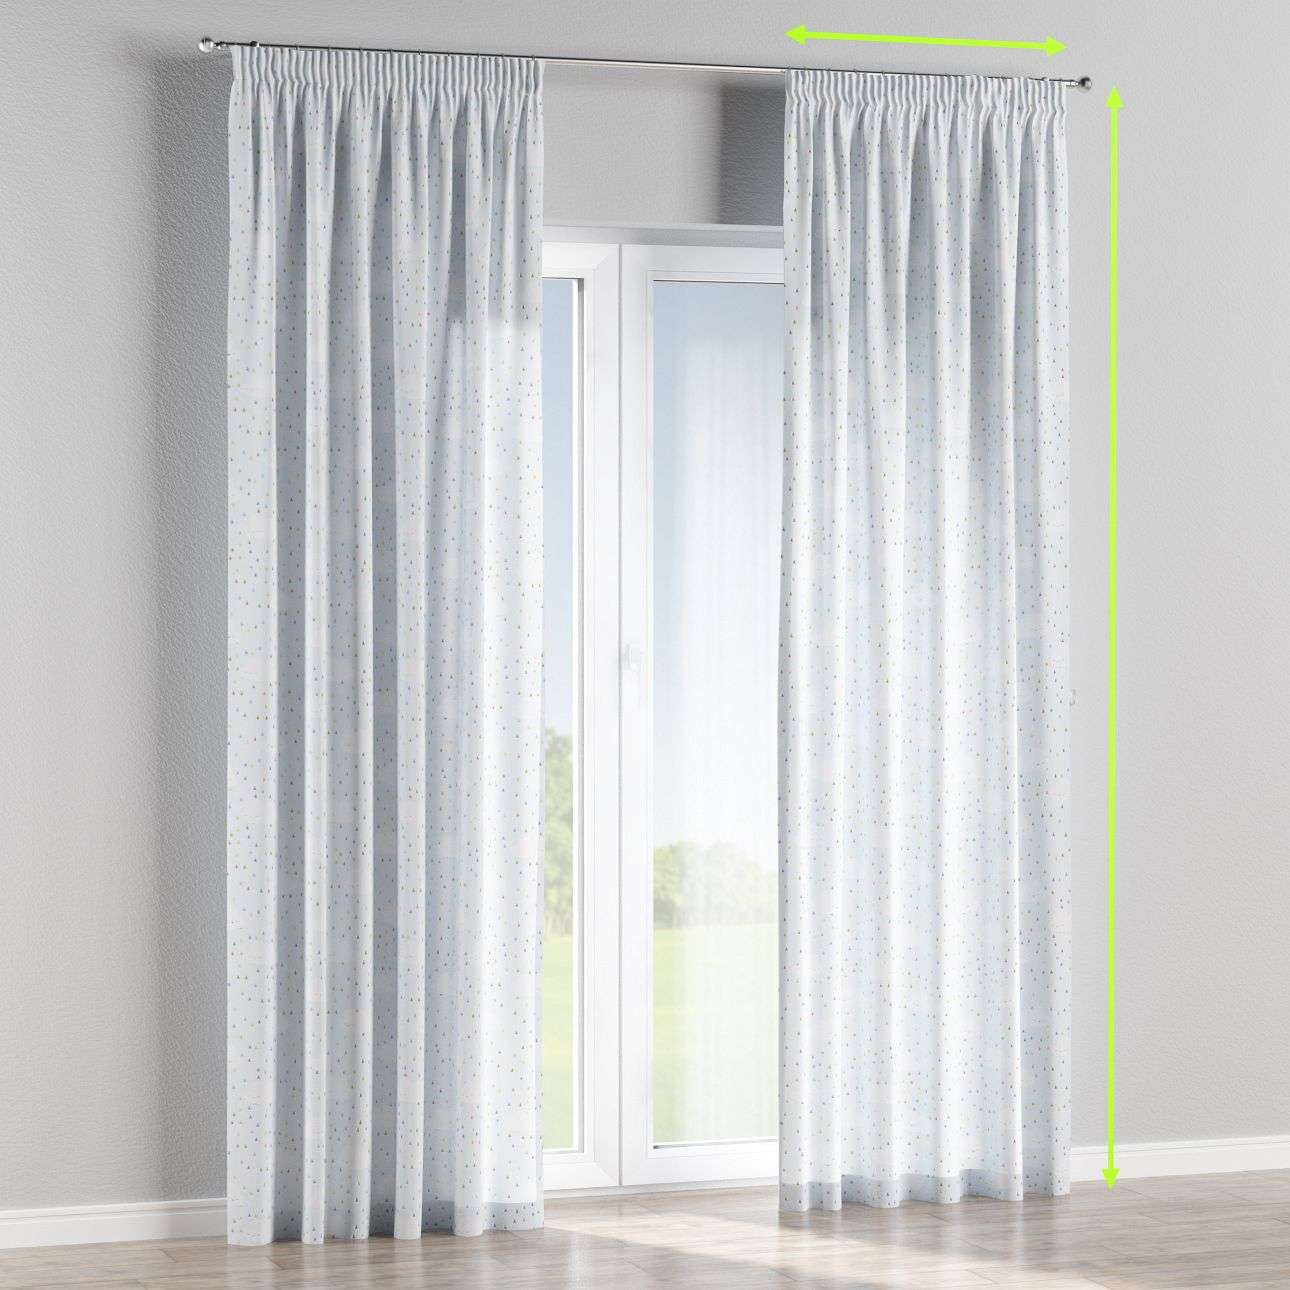 Pencil pleat lined curtains in collection Apanona, fabric: 151-03